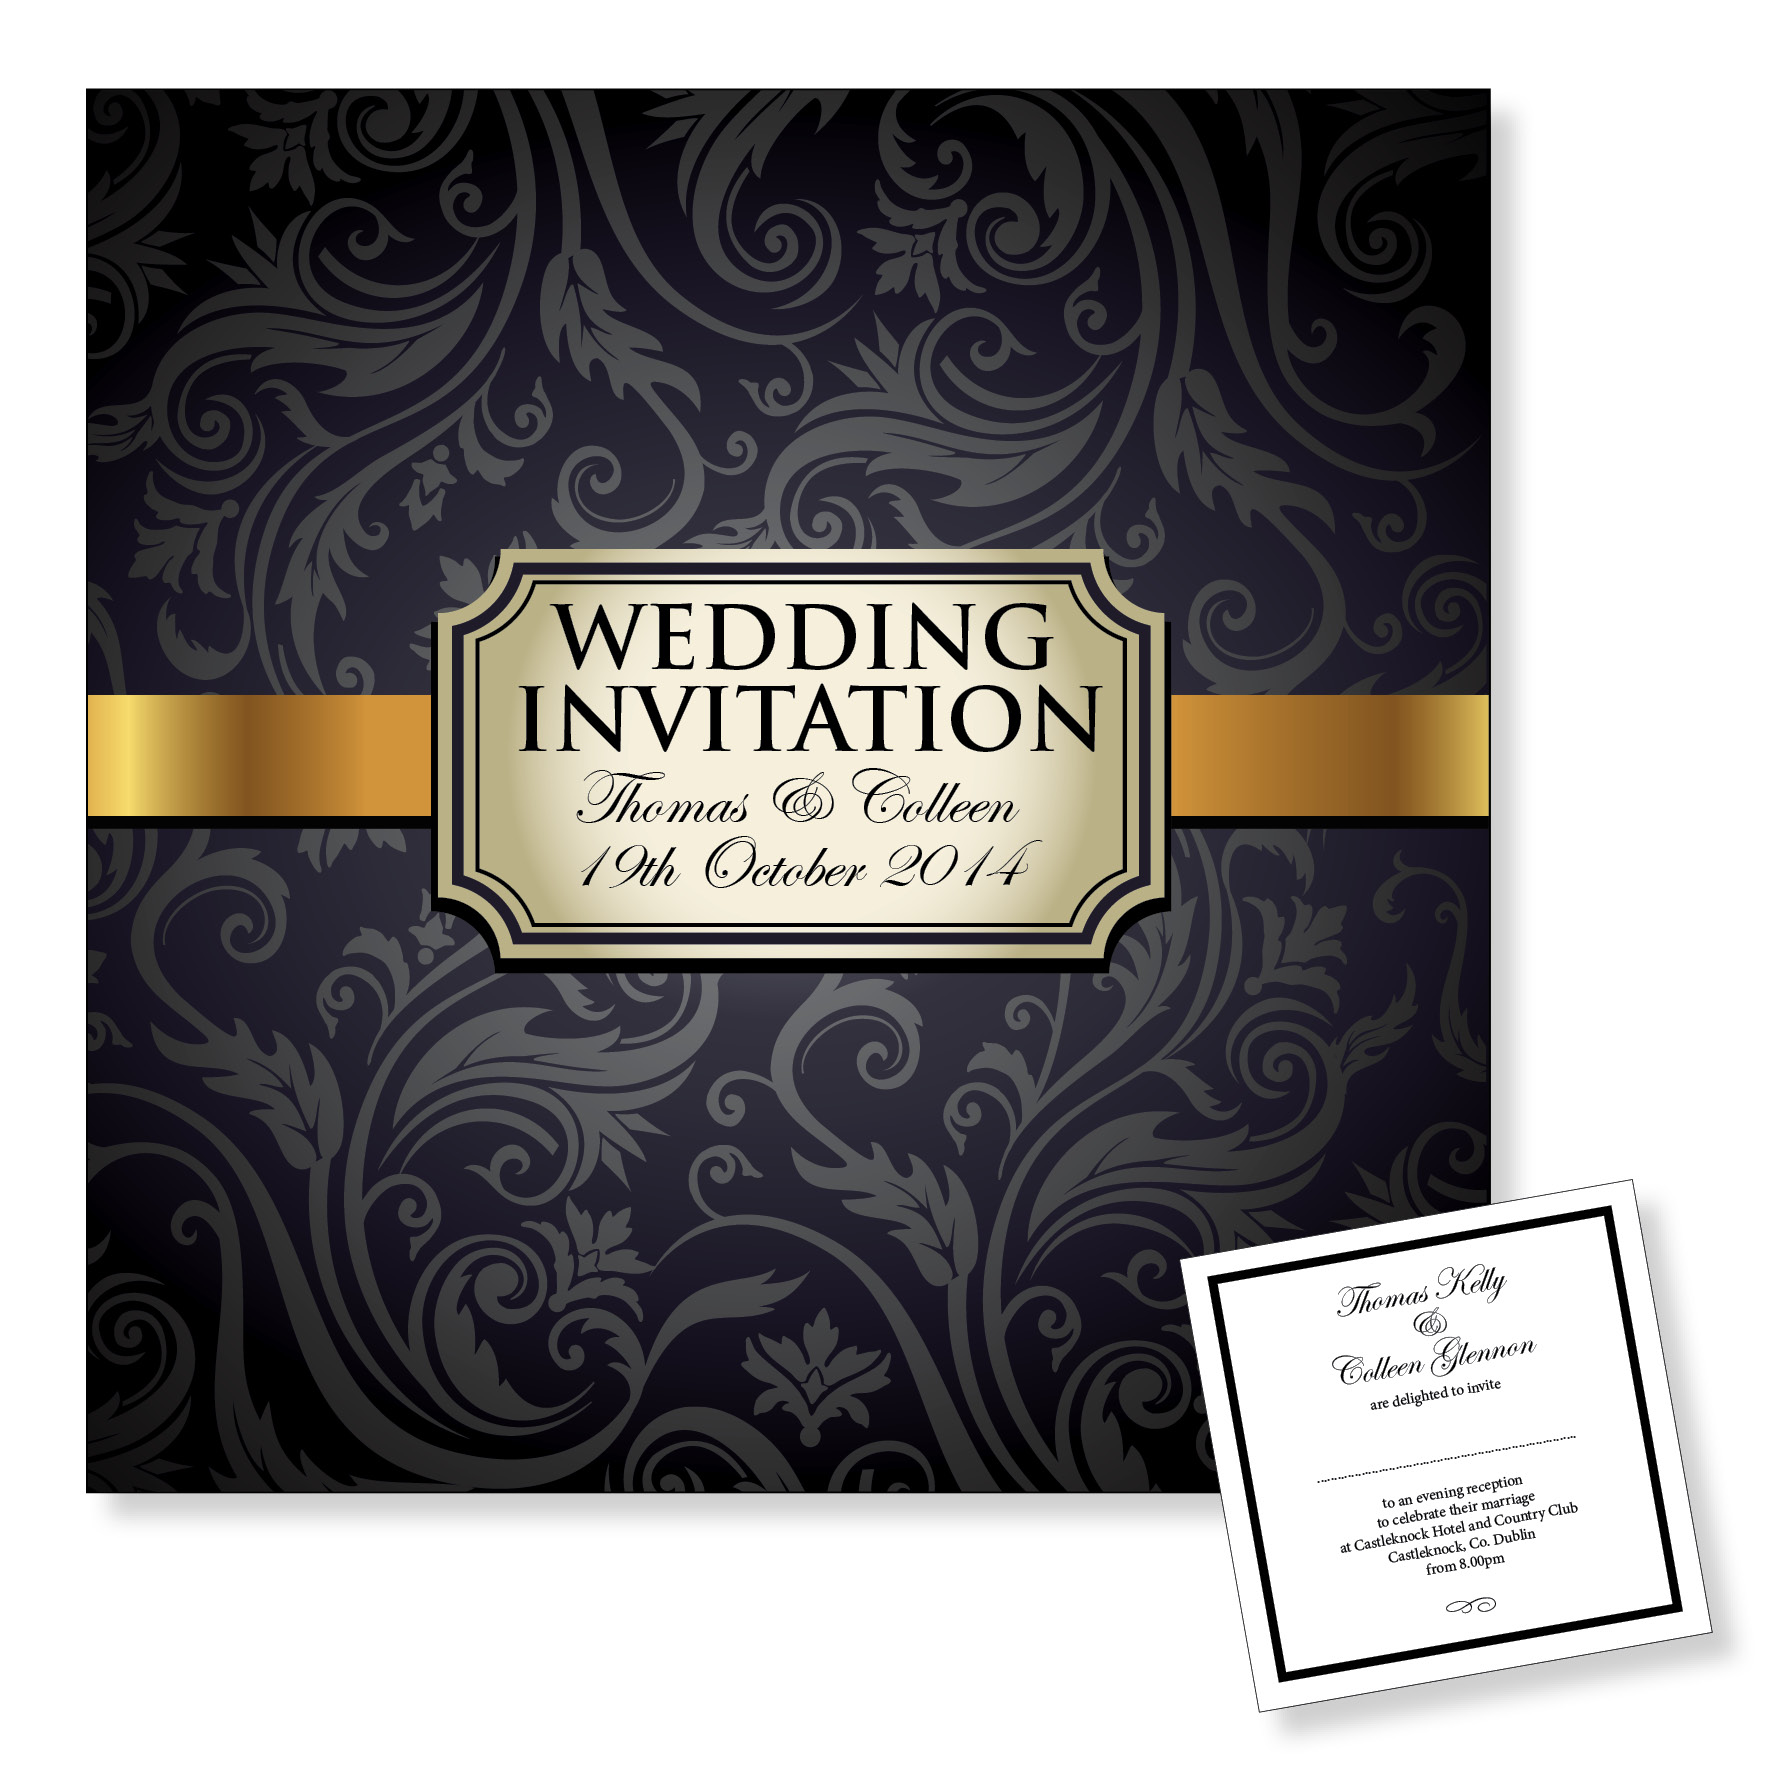 Evening wedding invitation - Black vintage